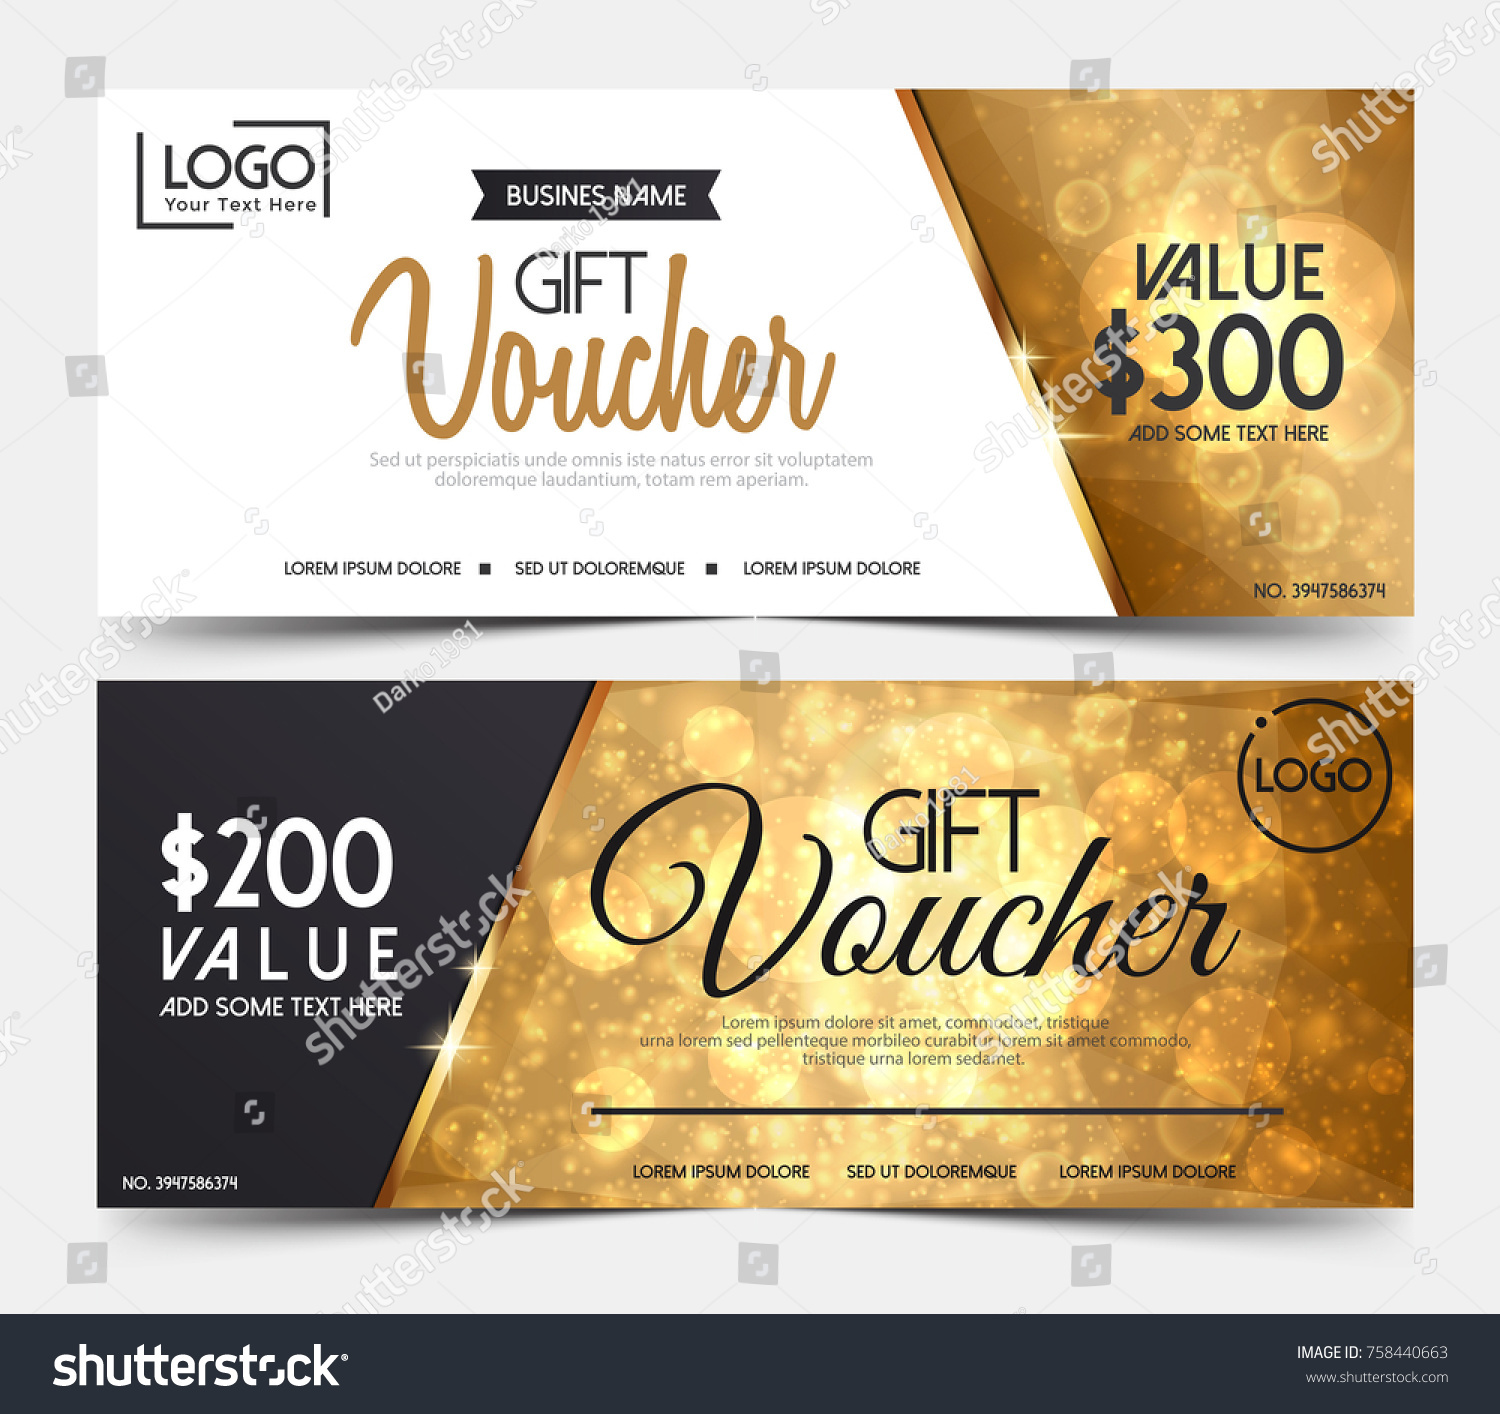 Gift Voucher Template Certificate Coupon Design Stock Photo Photo - Gift certificate template add logo